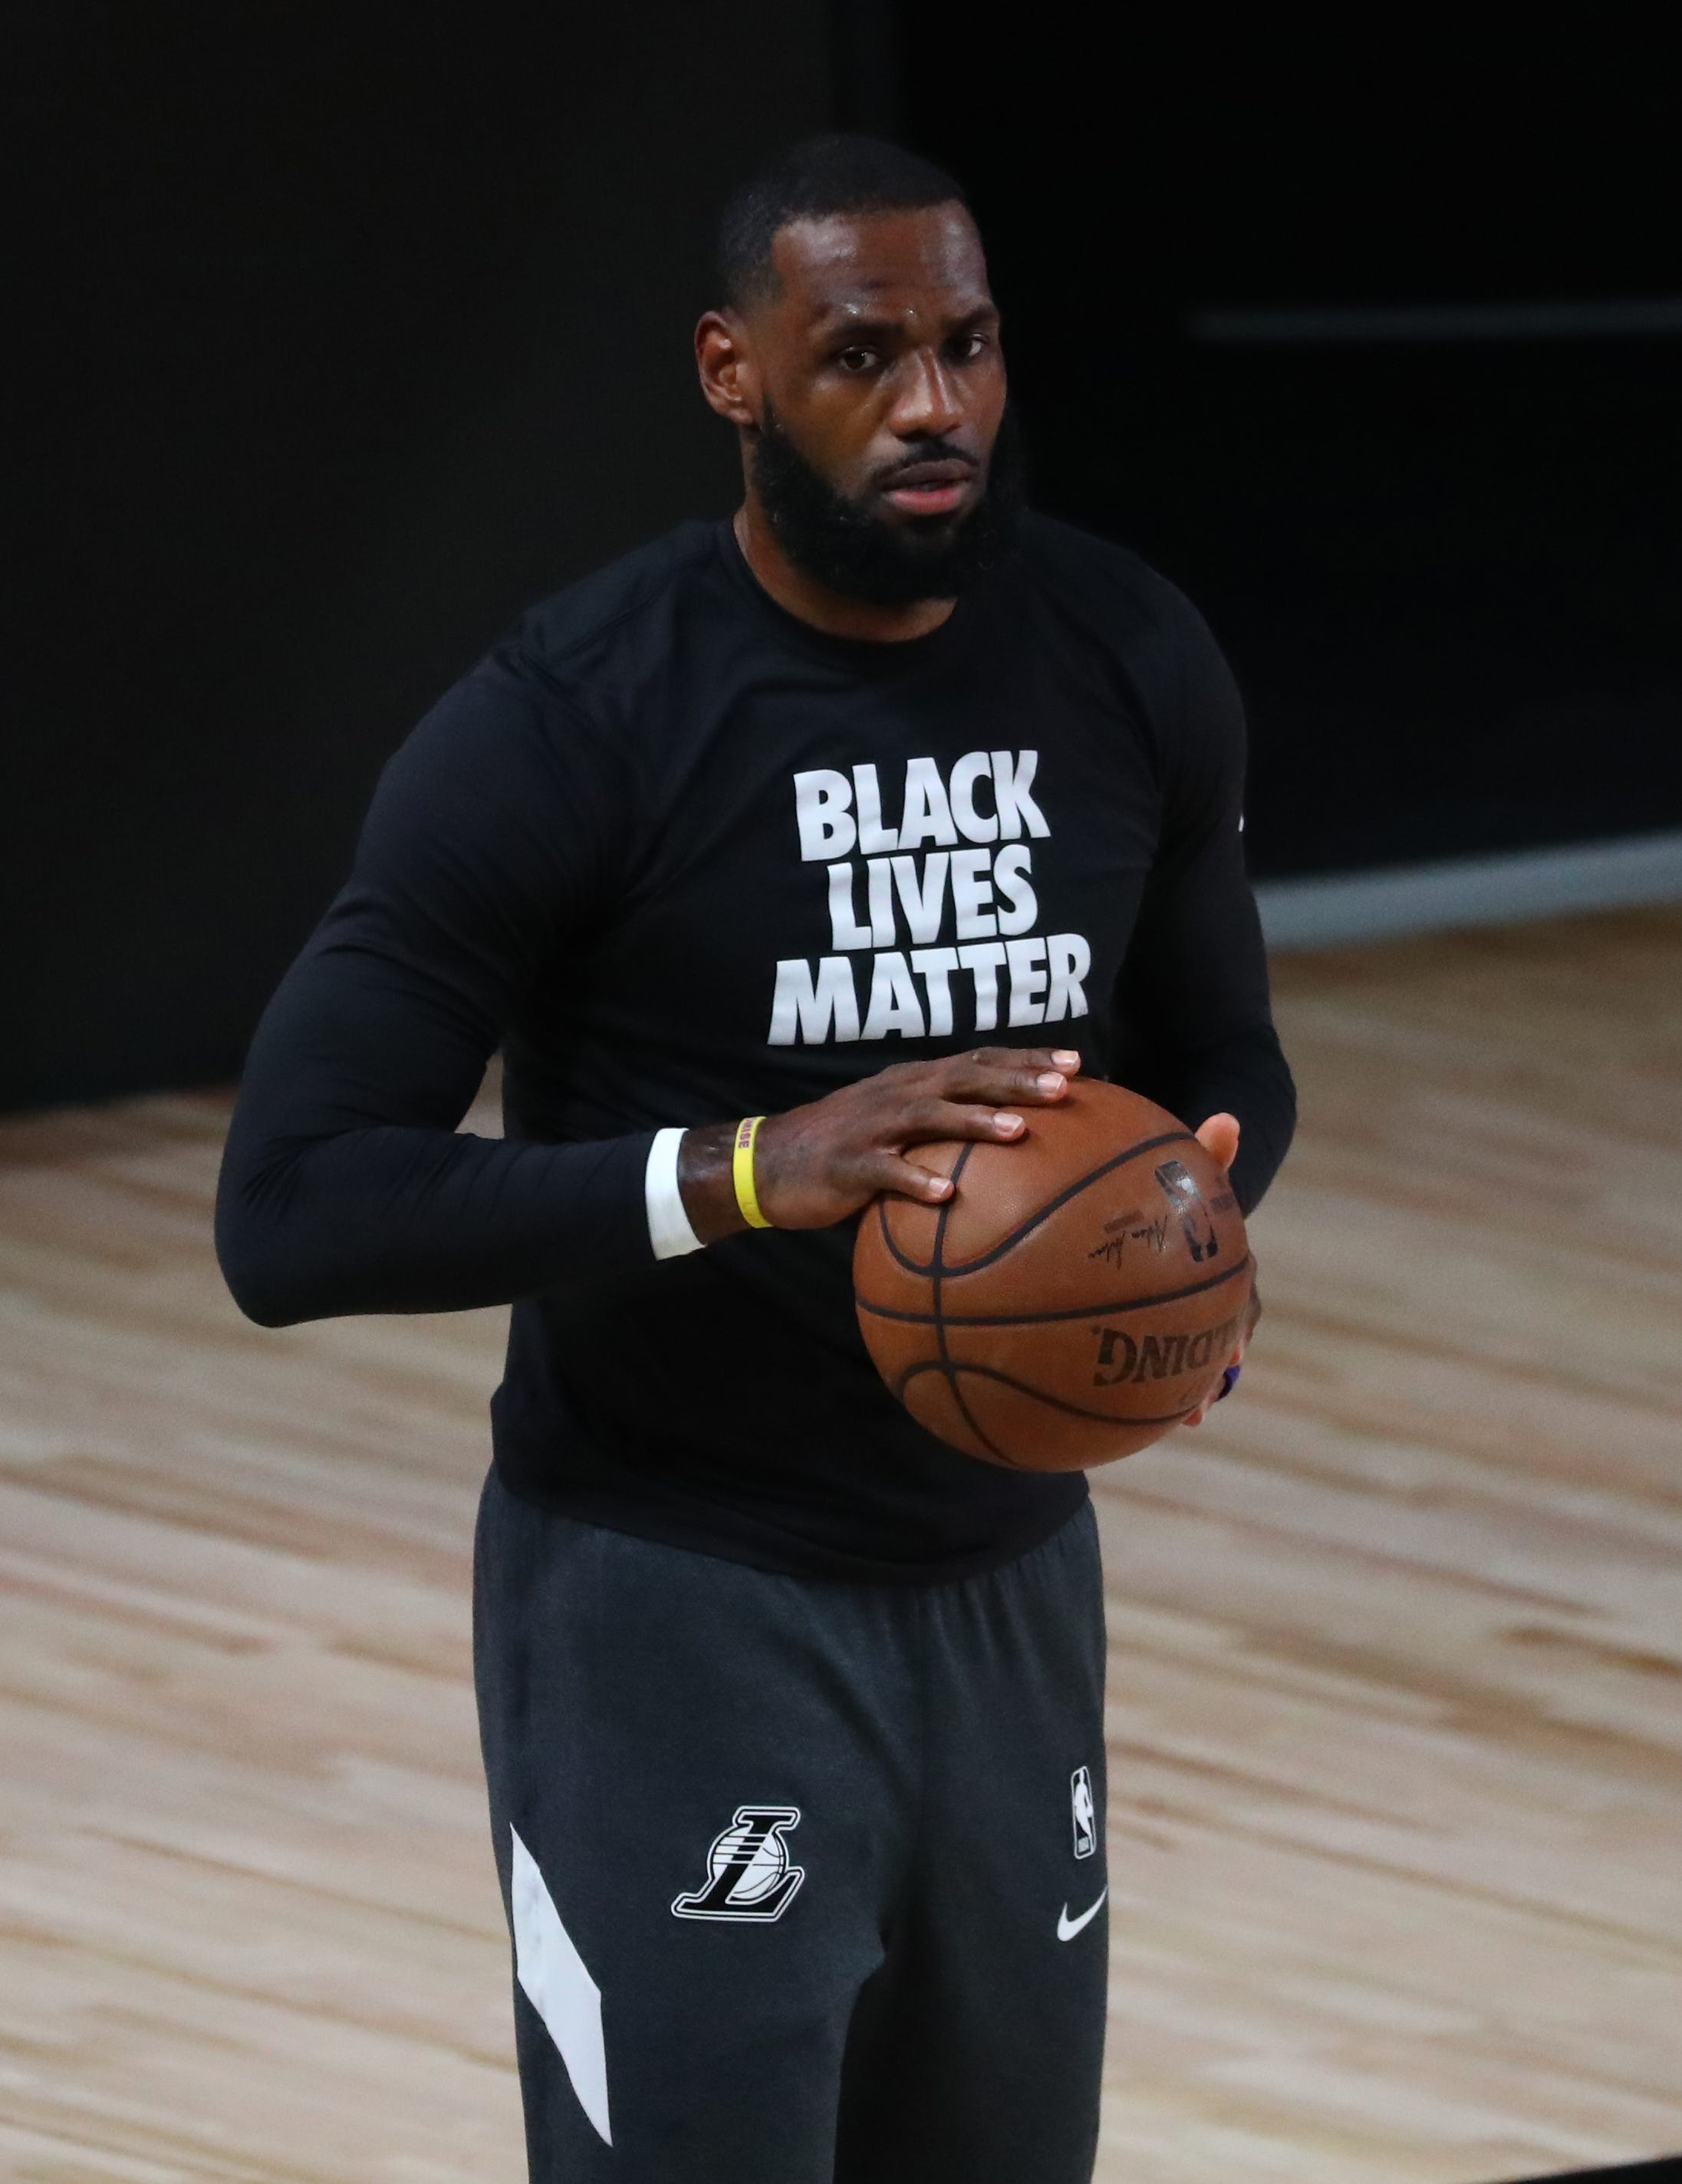 LA County Sheriff asks LeBron James to match $175,000 reward to help find shooter